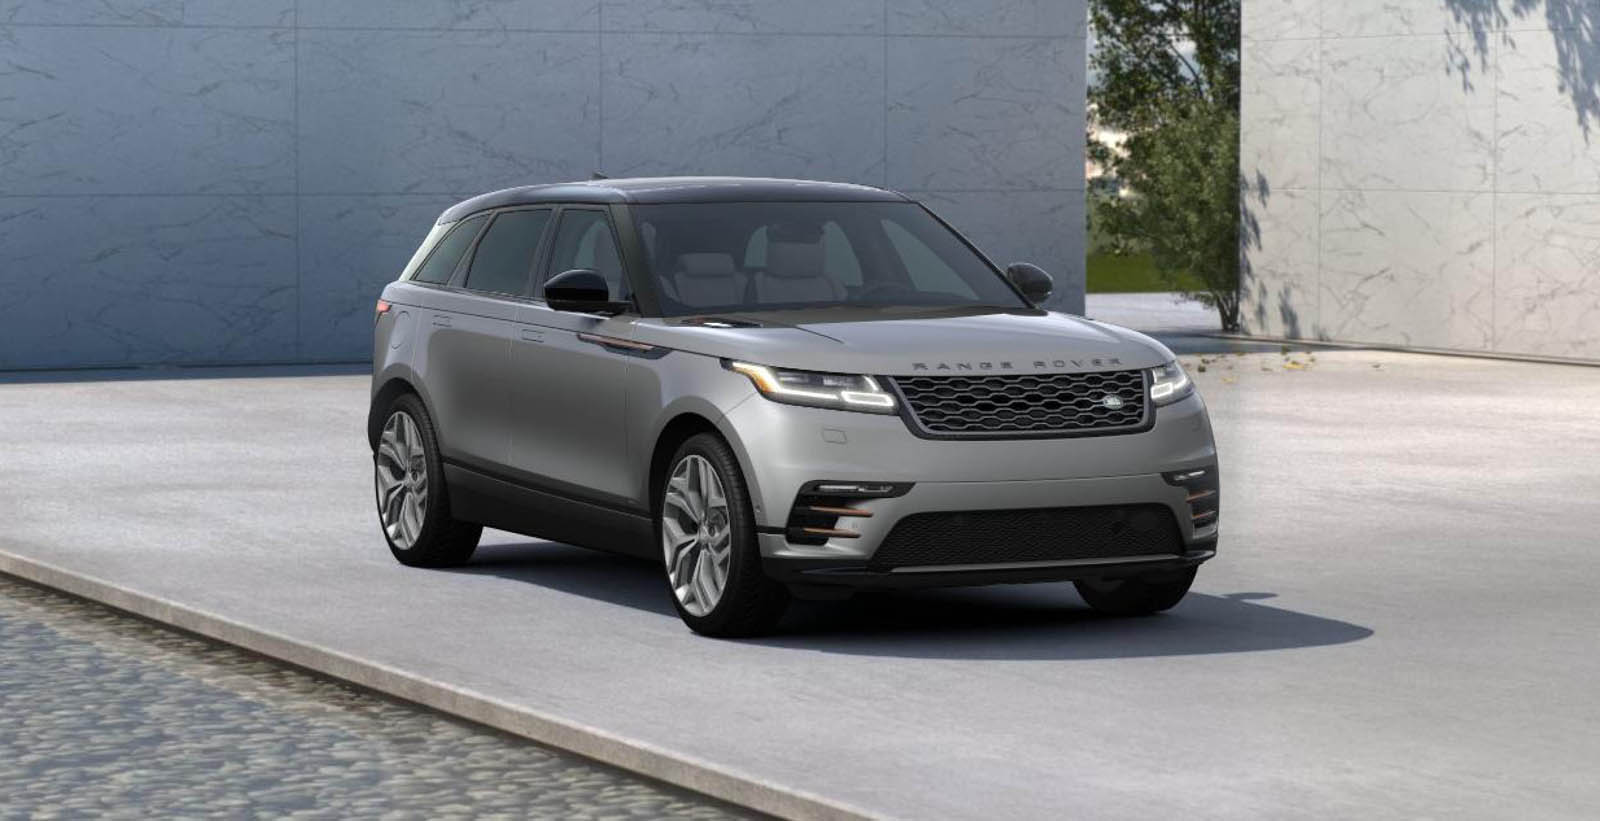 Range Rover Velar Configurator Shows You How To Double The